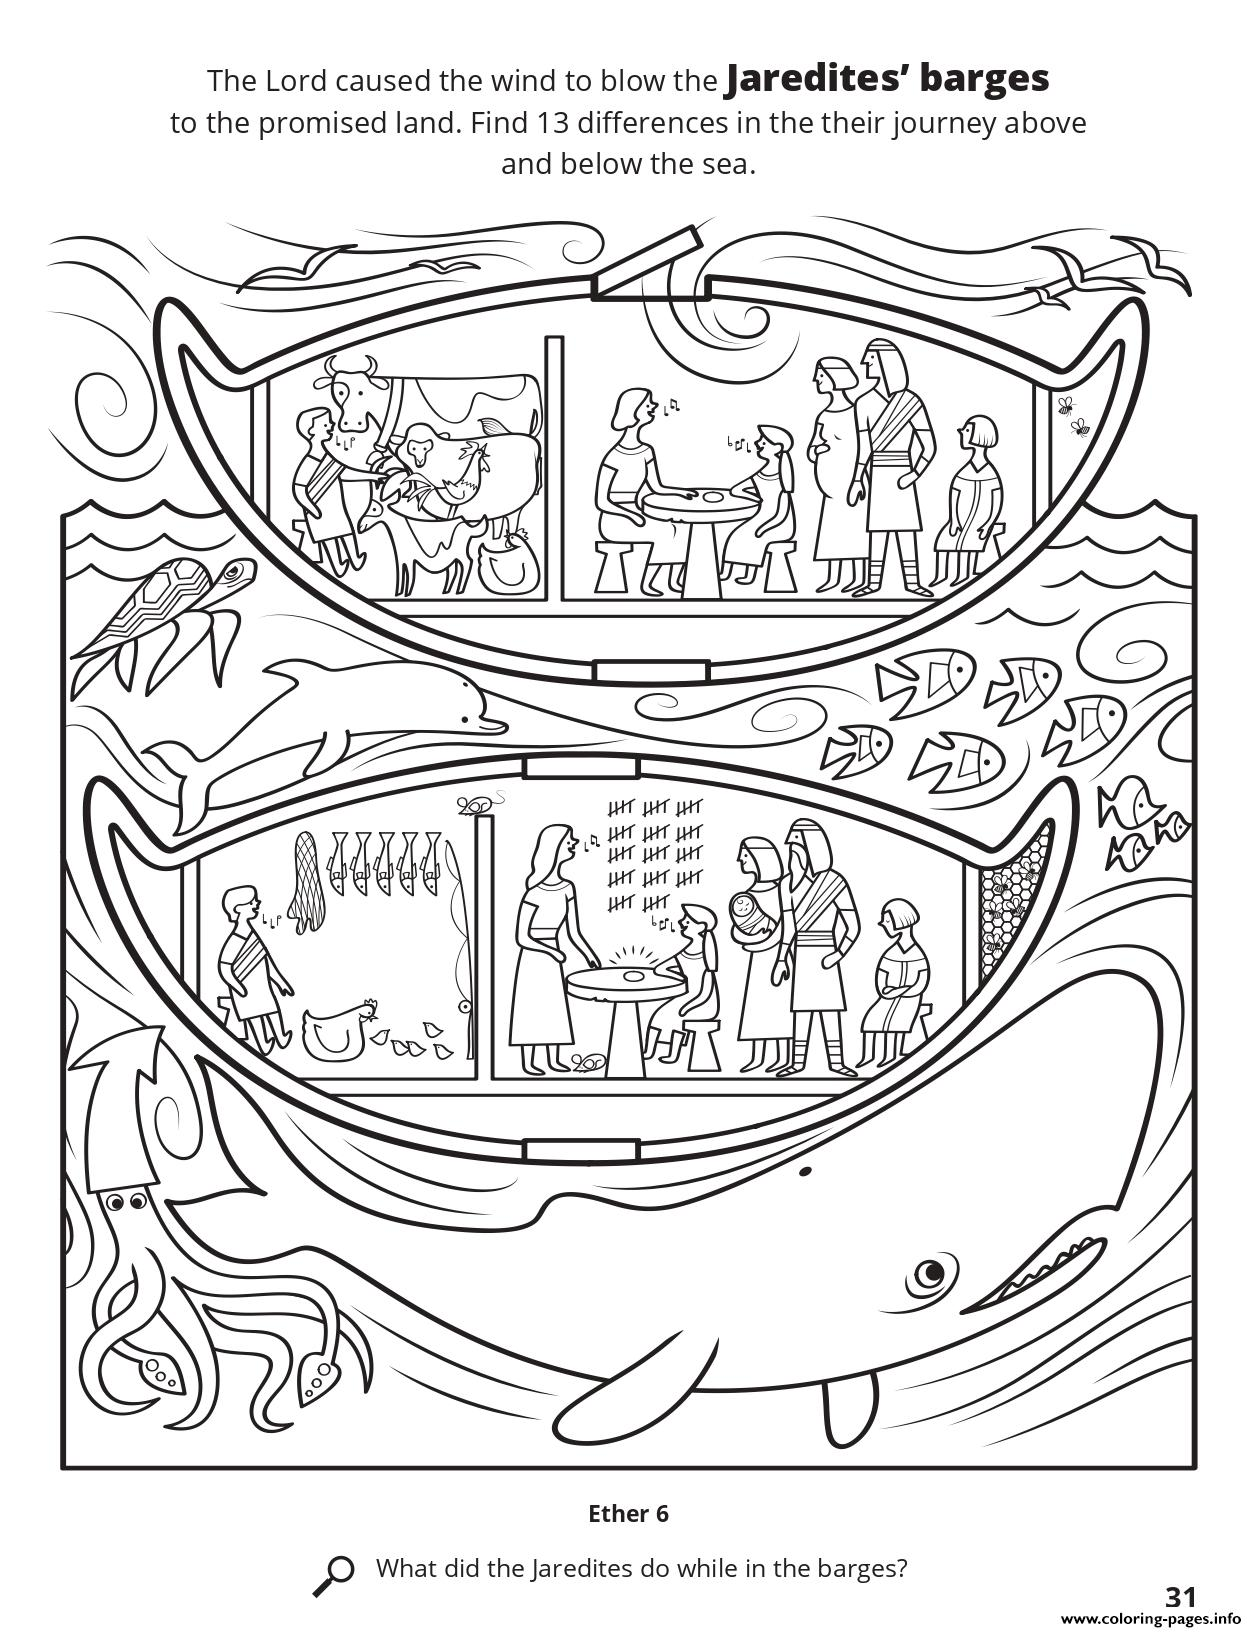 Find 13 Differences In Their Journey Above And Below The Sea coloring pages